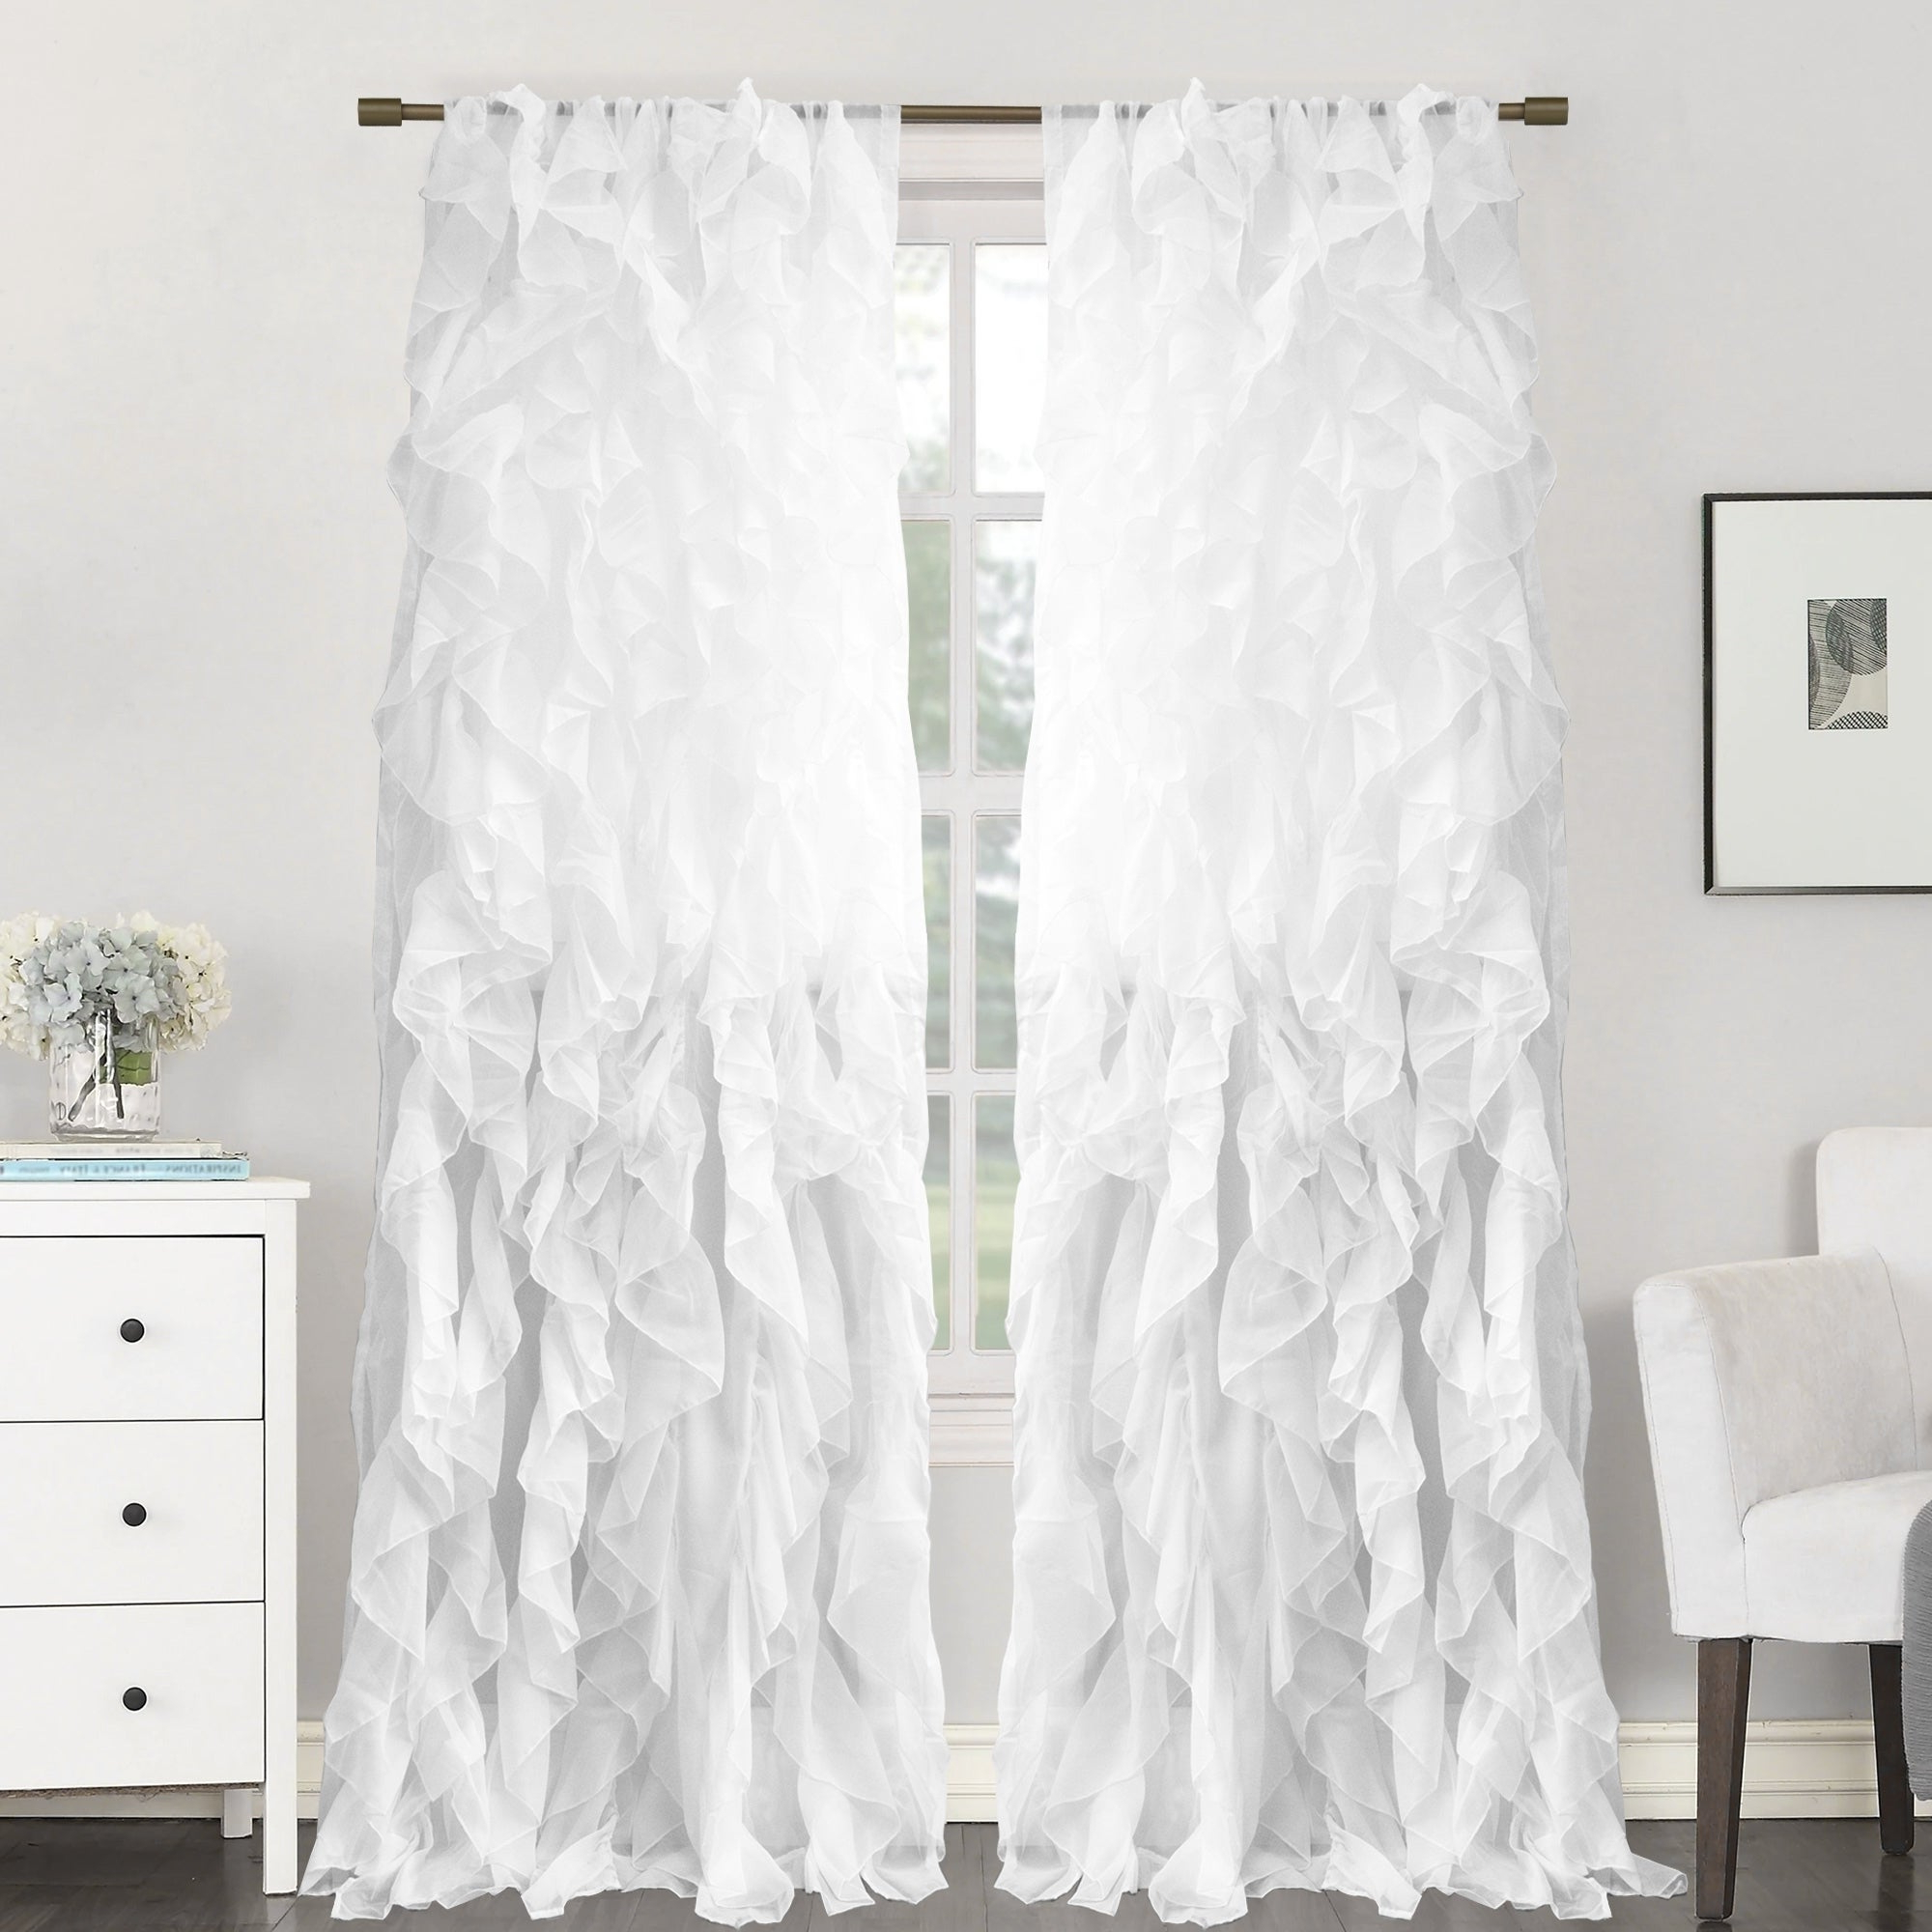 "Sheer Voile Ruffled Tier Window Curtain Panels Within Most Recent Sweet Home Collection Sheer Voile Waterfall Ruffled Tier 84 Inch Single Curtain Panel – 84"" Long X 50"" Wide (View 6 of 20)"